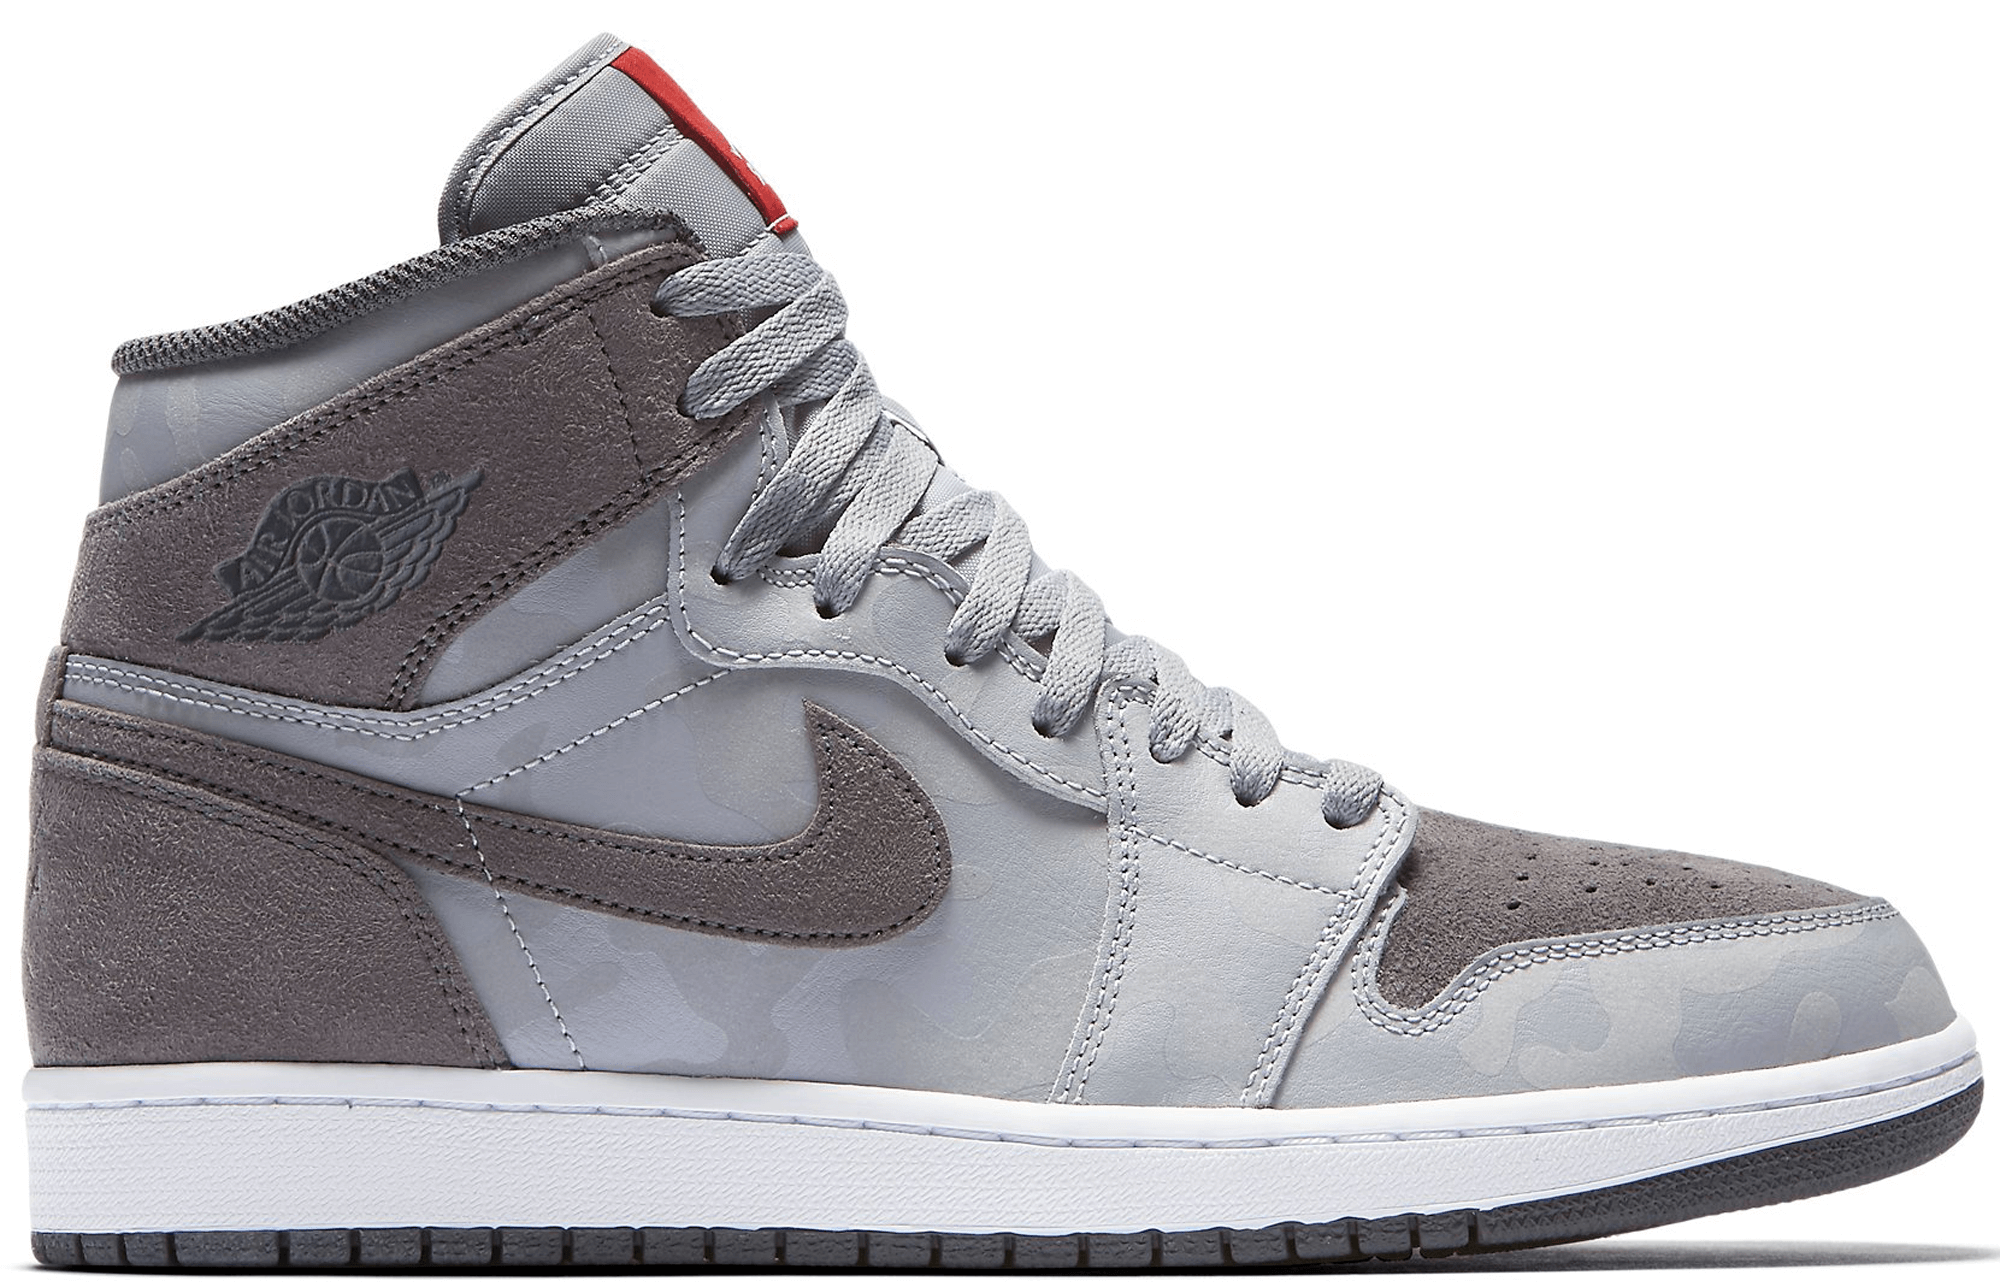 9addc646109bc7 Air Jordan 1 Retro High Premium (Camo) Wolf Grey White University ...